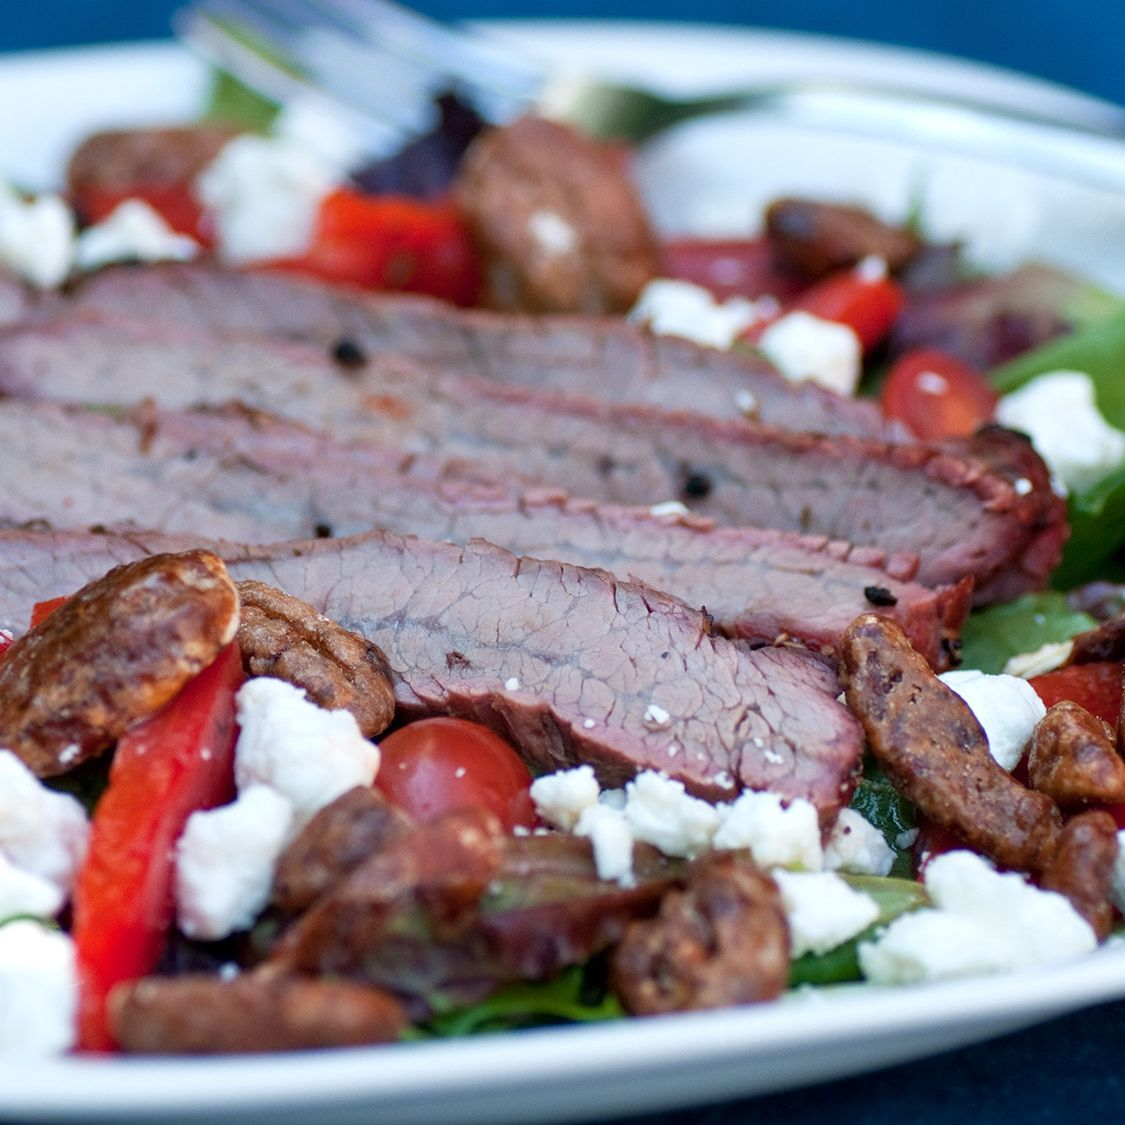 grilled_steak_salad.jpg